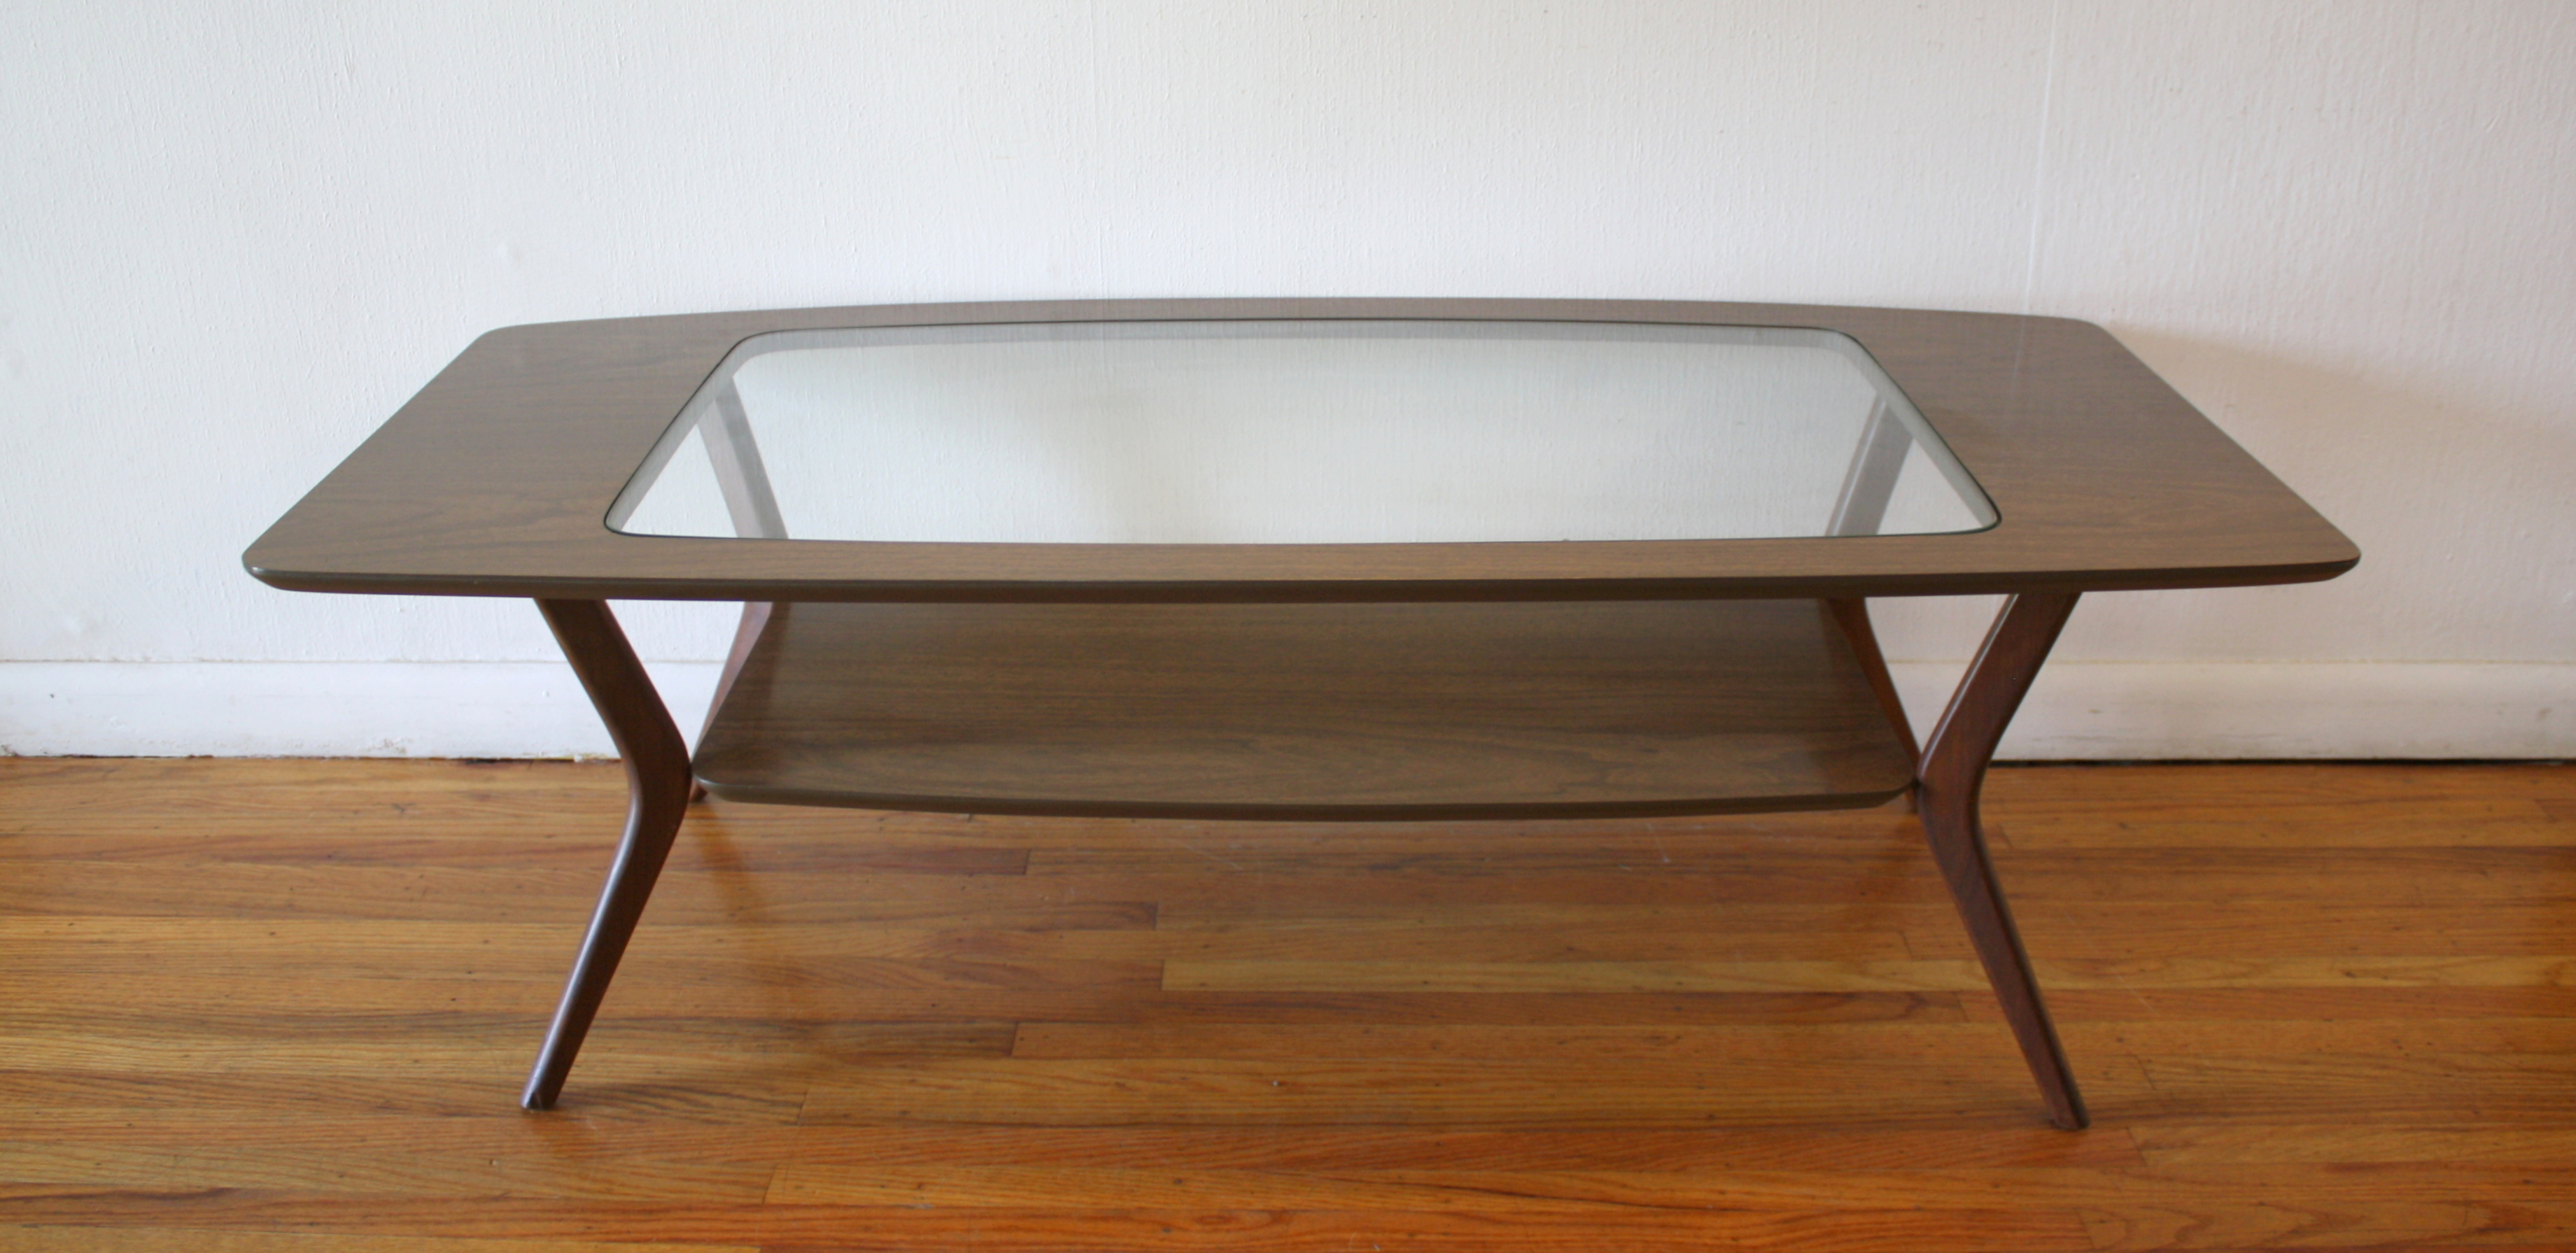 Mid century modern glass topped coffee table and matching side end table picked vintage Matching coffee table and end tables